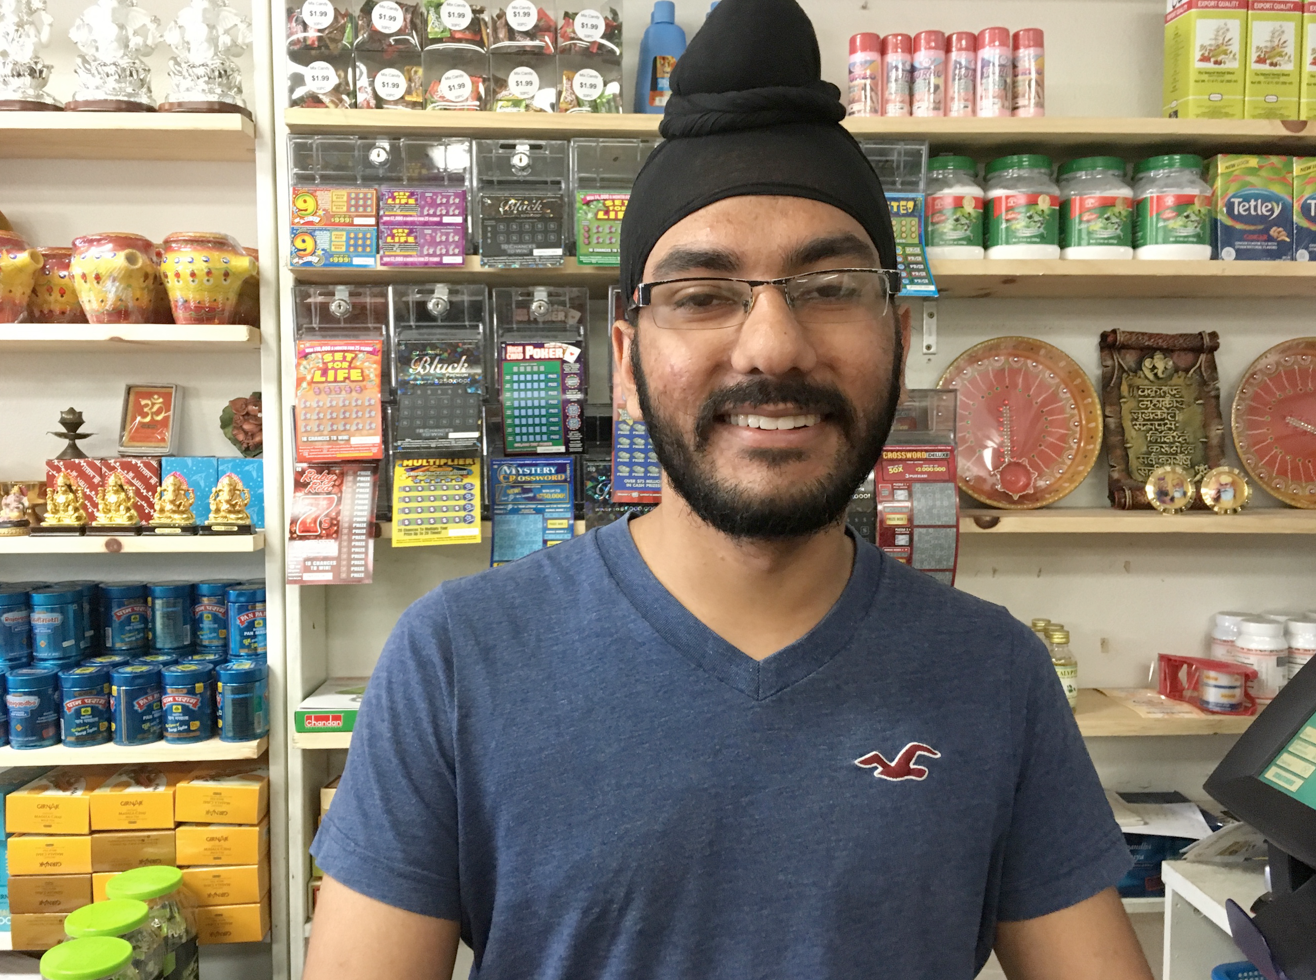 Clerk at Punjab grocery who gave me a tour of all of the spice variations;, whole, ground, and already combined into pre-packaged masalas. He advocated for homemade.